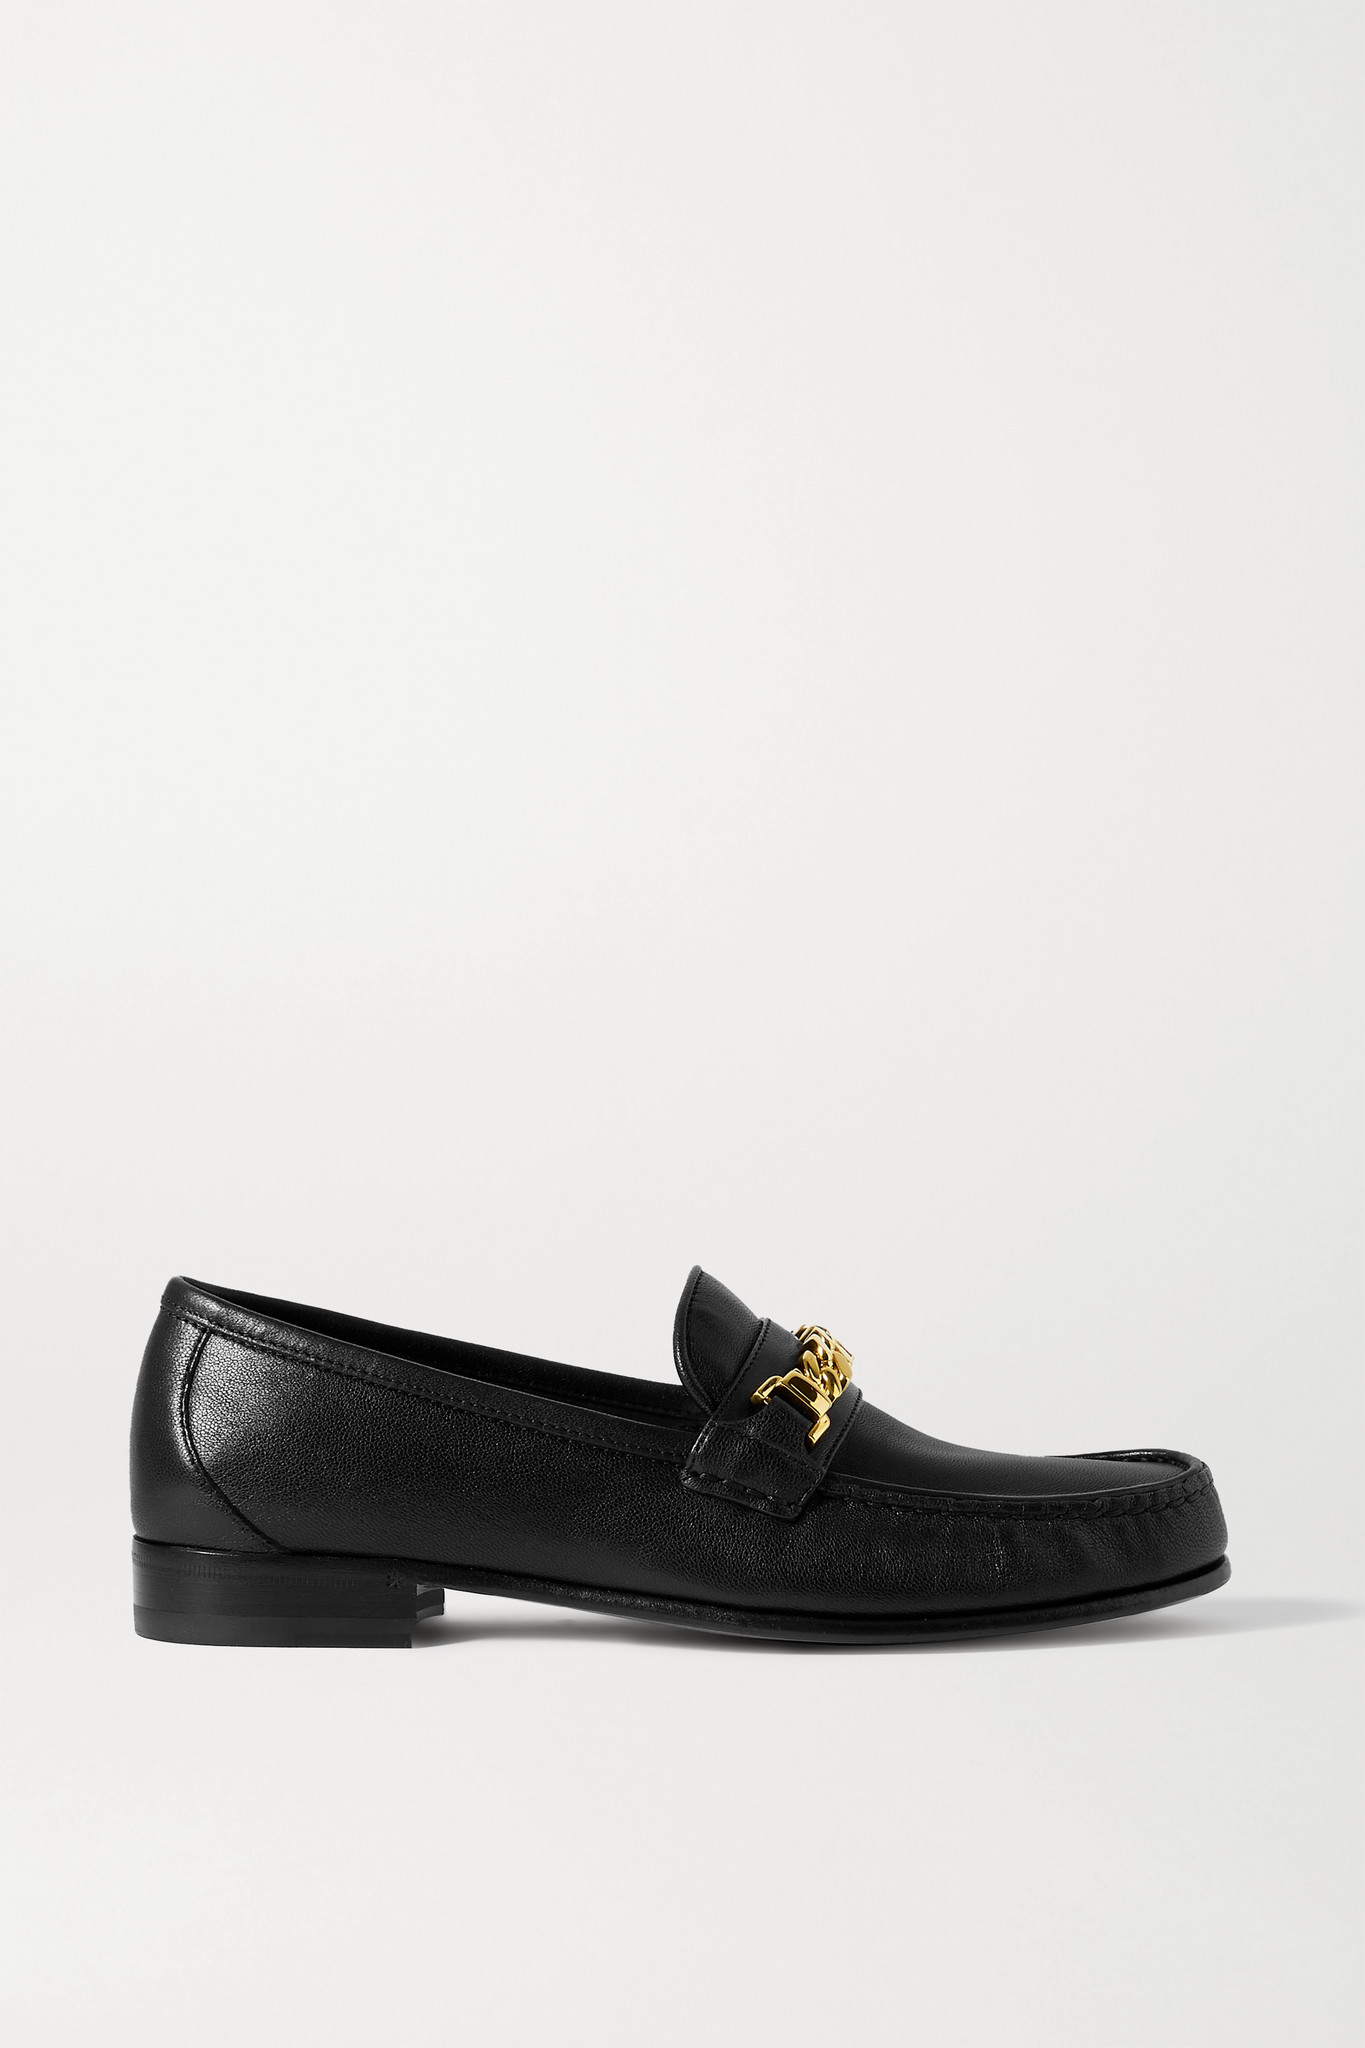 GUCCI - + Net Sustain Sylvie Chain-embellished Leather Loafers - Black - IT40